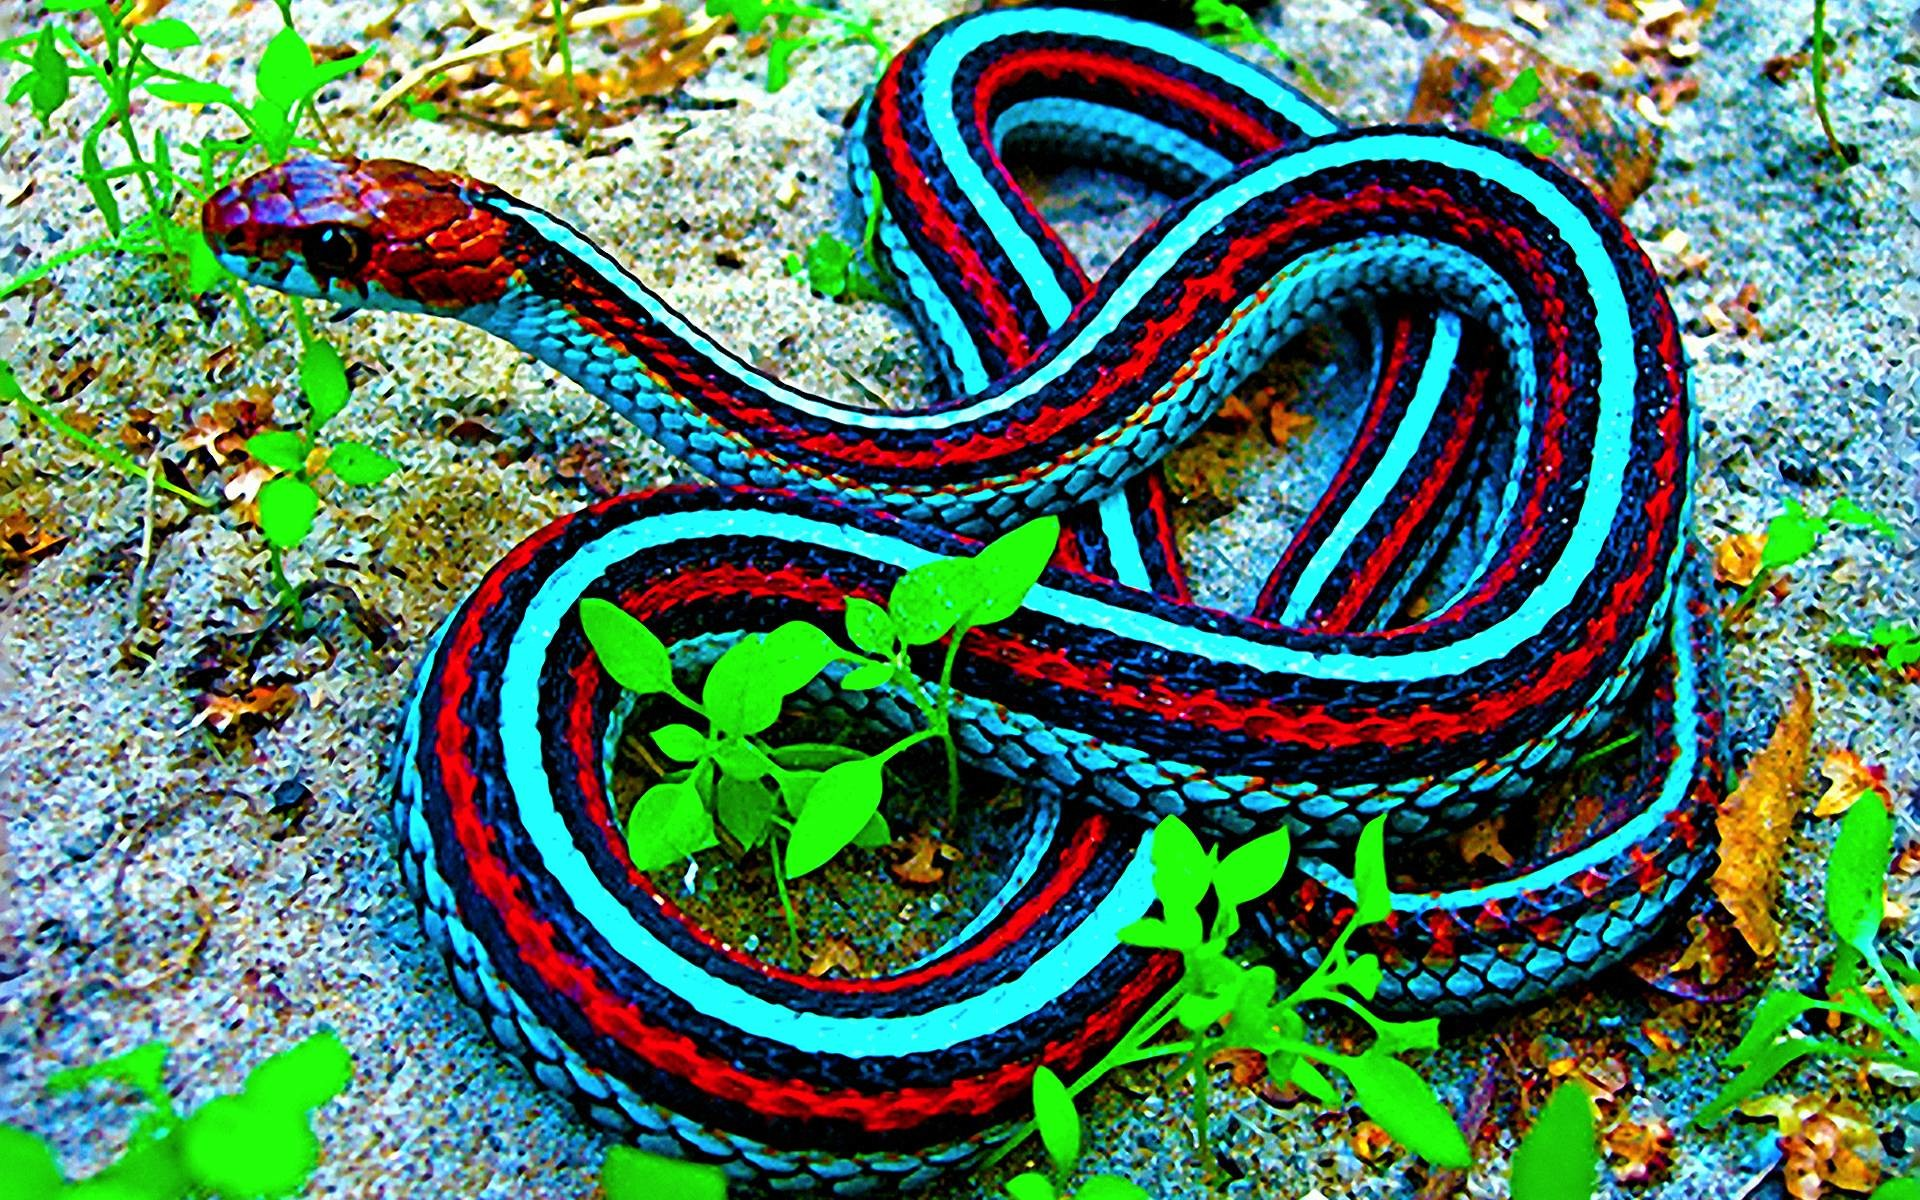 1920x1200 snakes images Snake HD wallpaper and background photos